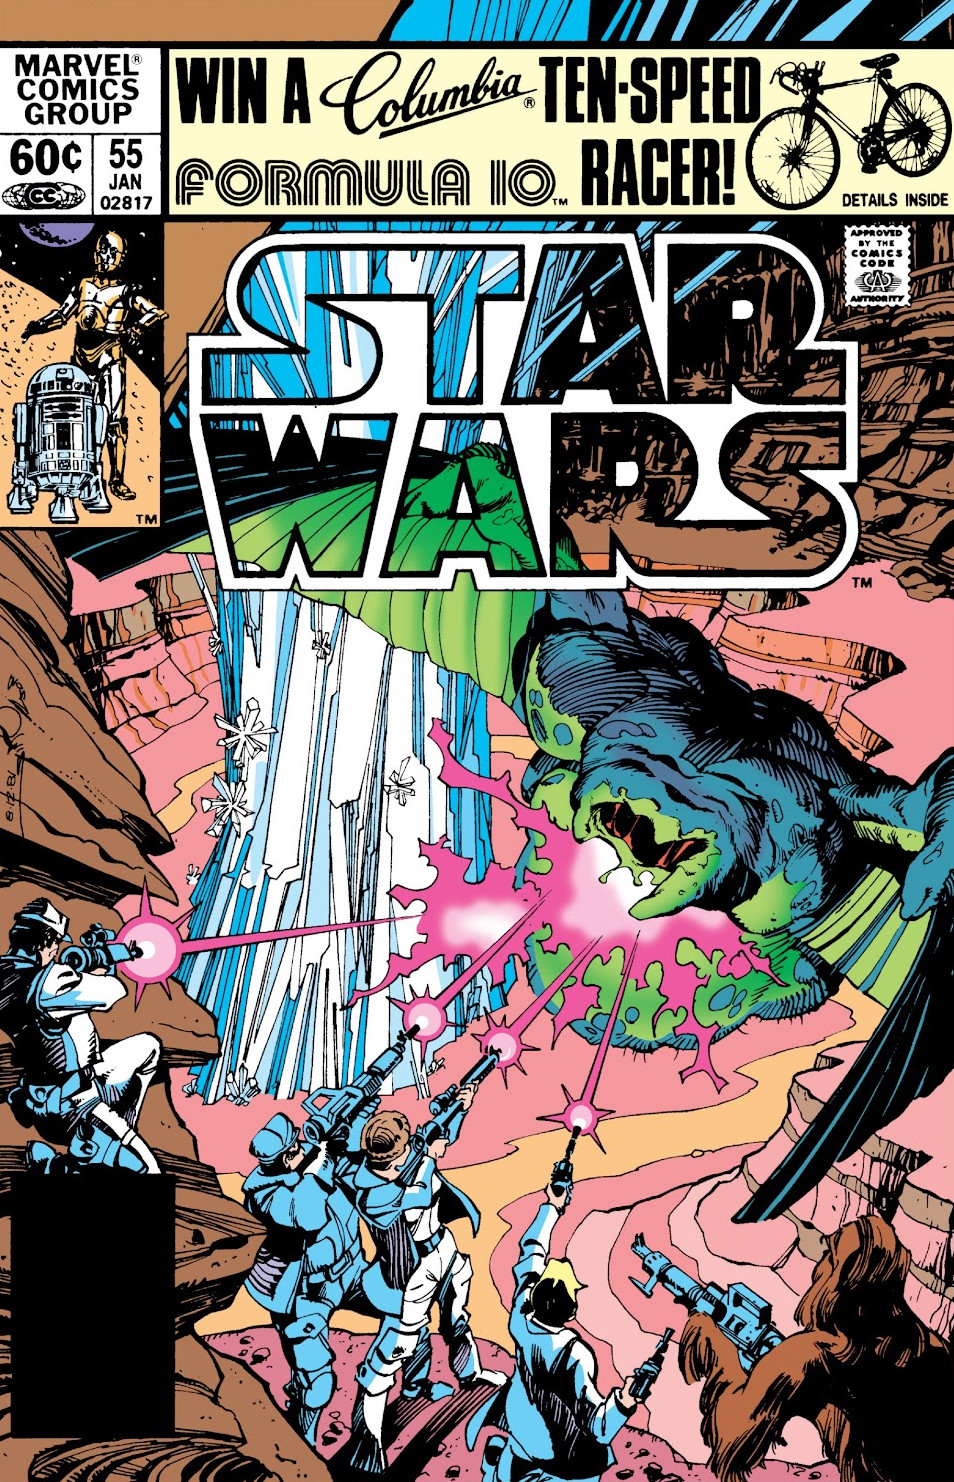 Star_Wars_Vol_1_55.jpg